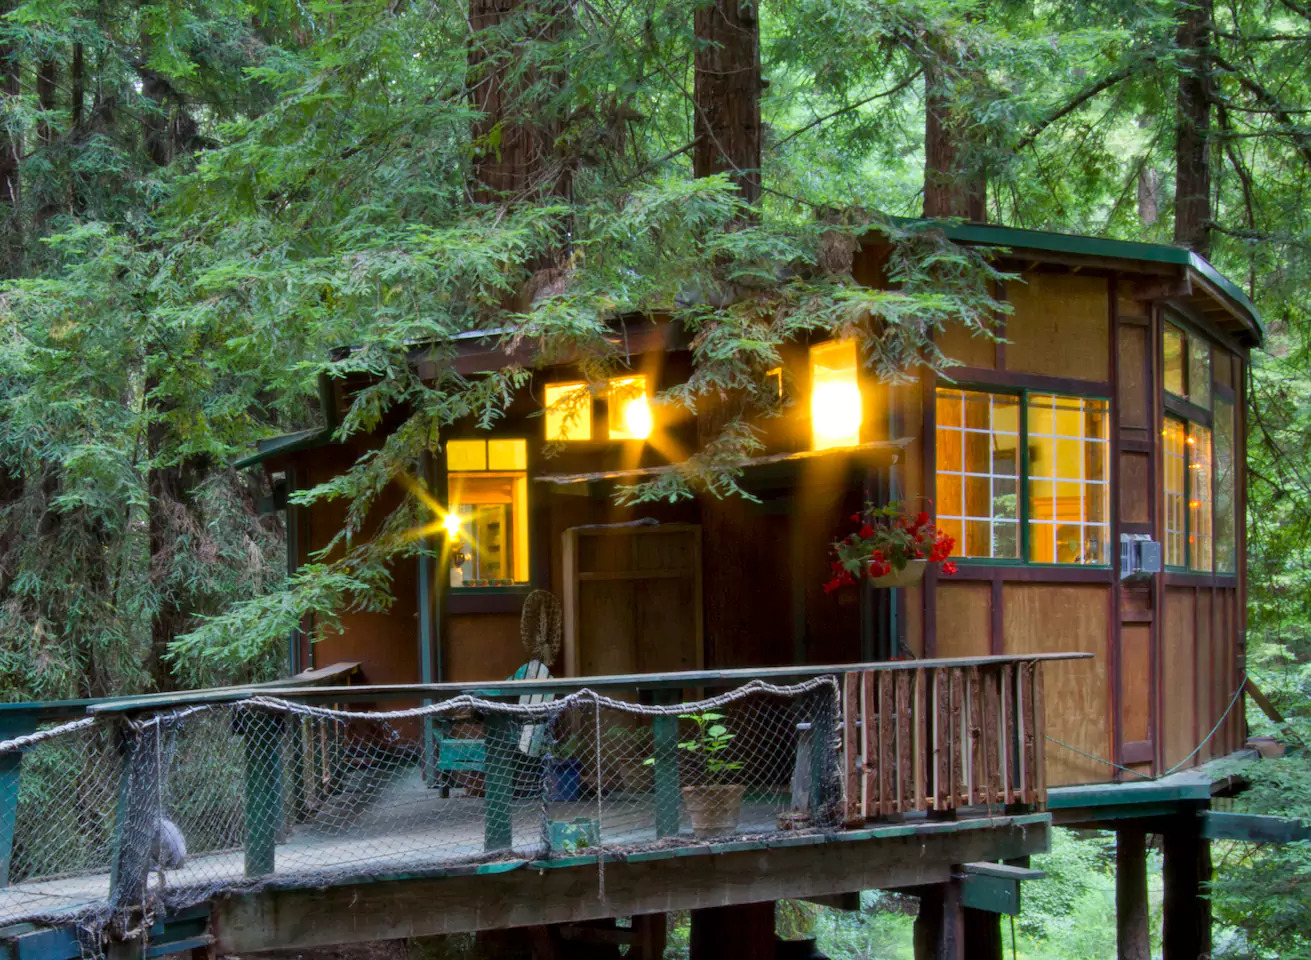 Built By A Stained Gl Artist This Treehouse Has Its Main Tree Growing Directly Through The Living Area And Another Bathroom